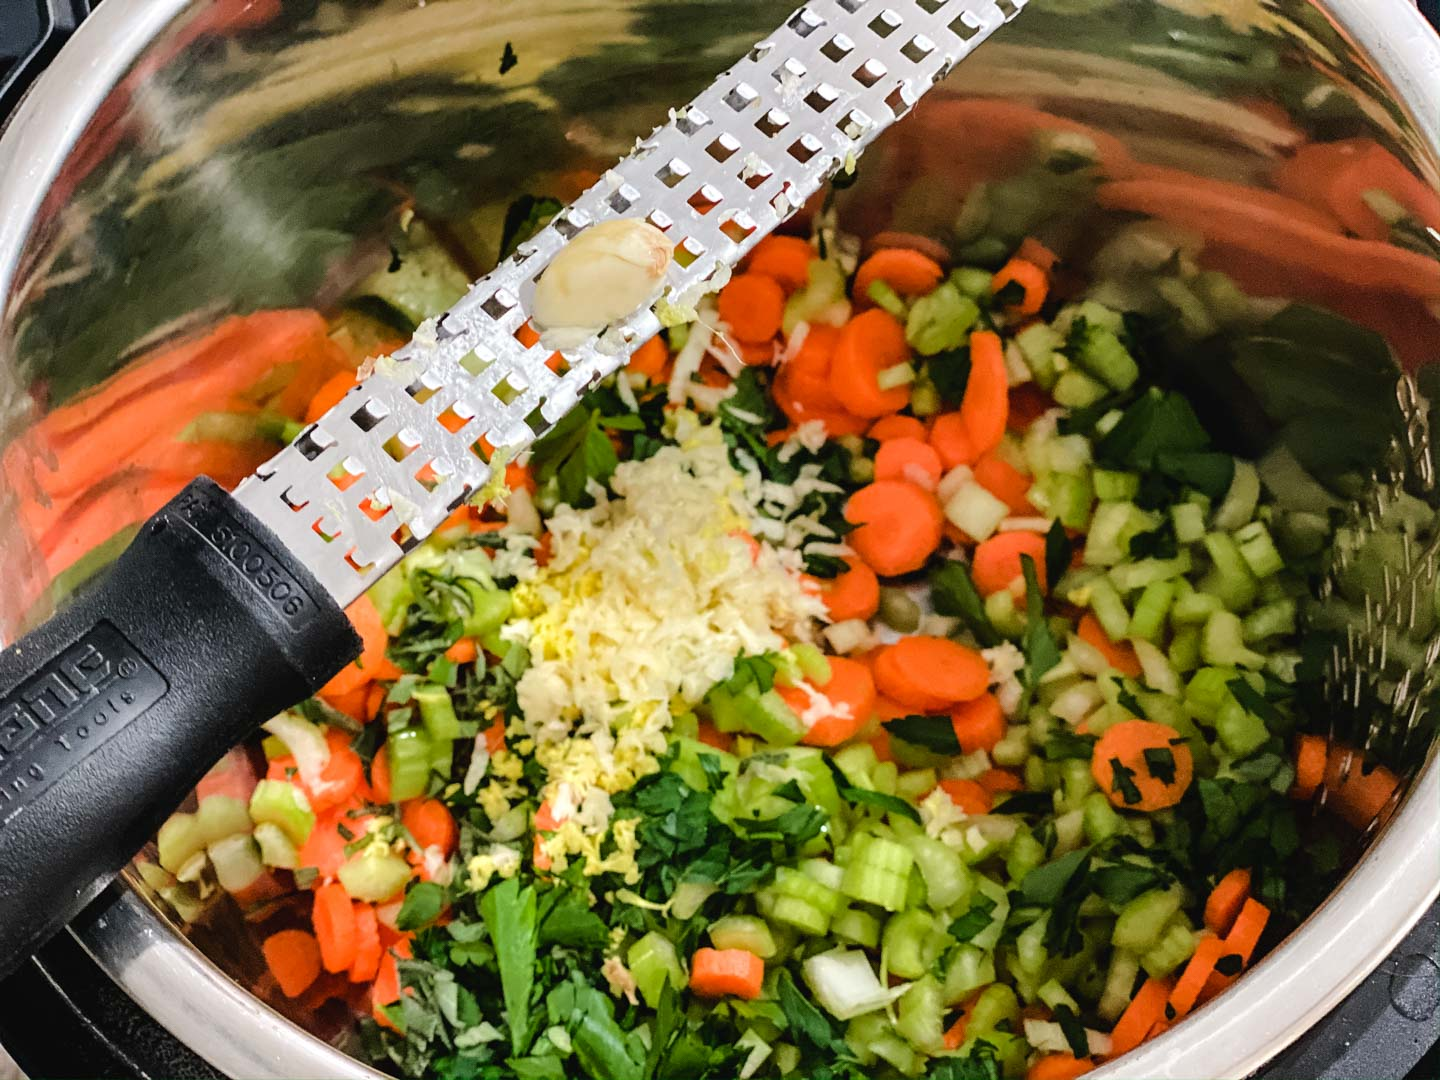 Chopped carrots, celery, parsley, sage, ginger and garlic in a steel pot in a grater on top.